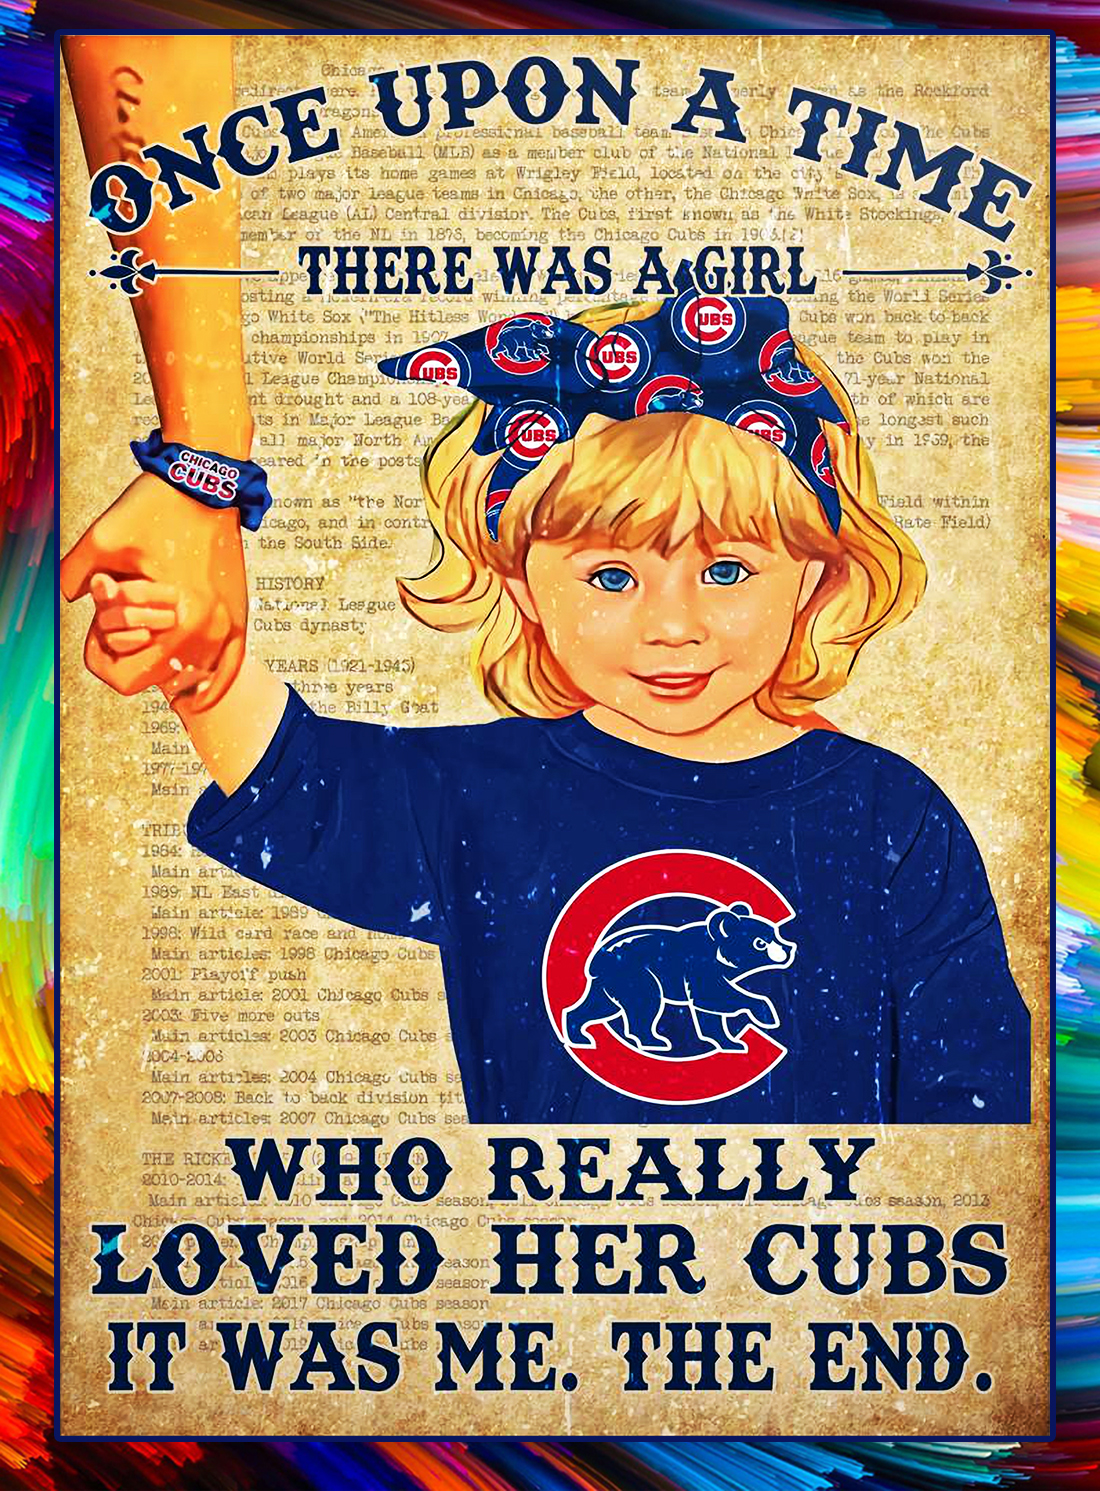 Once upon a time there was a girl who really loved her cubs poster - Blonde Hair